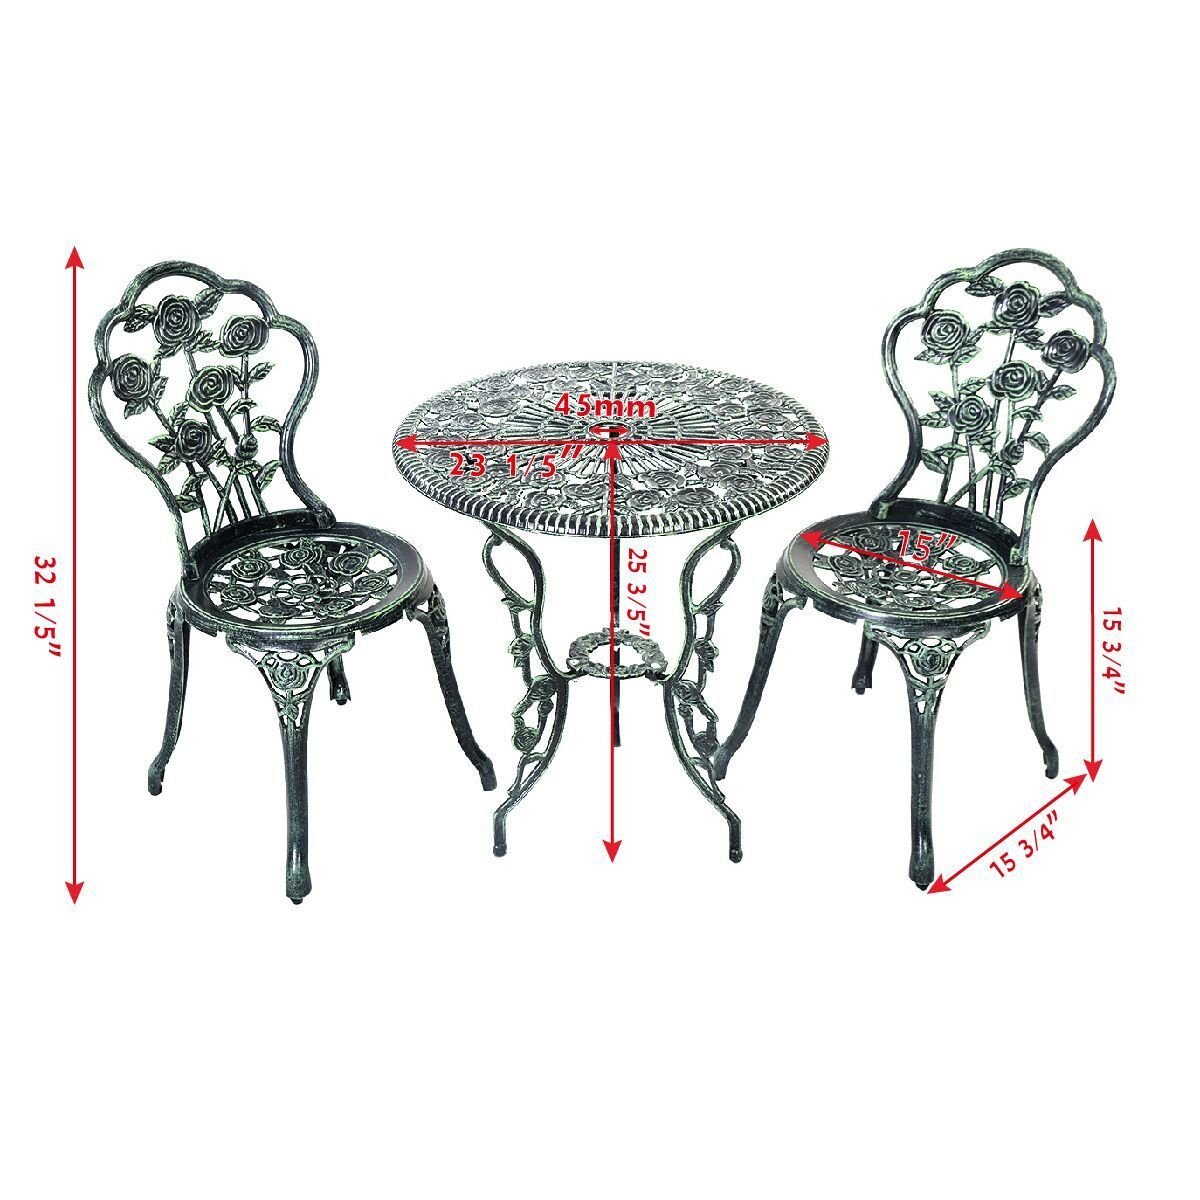 Giantex Patio Furniture Cast Aluminum Rose Design Bistro Set Antique Green (Green) 1